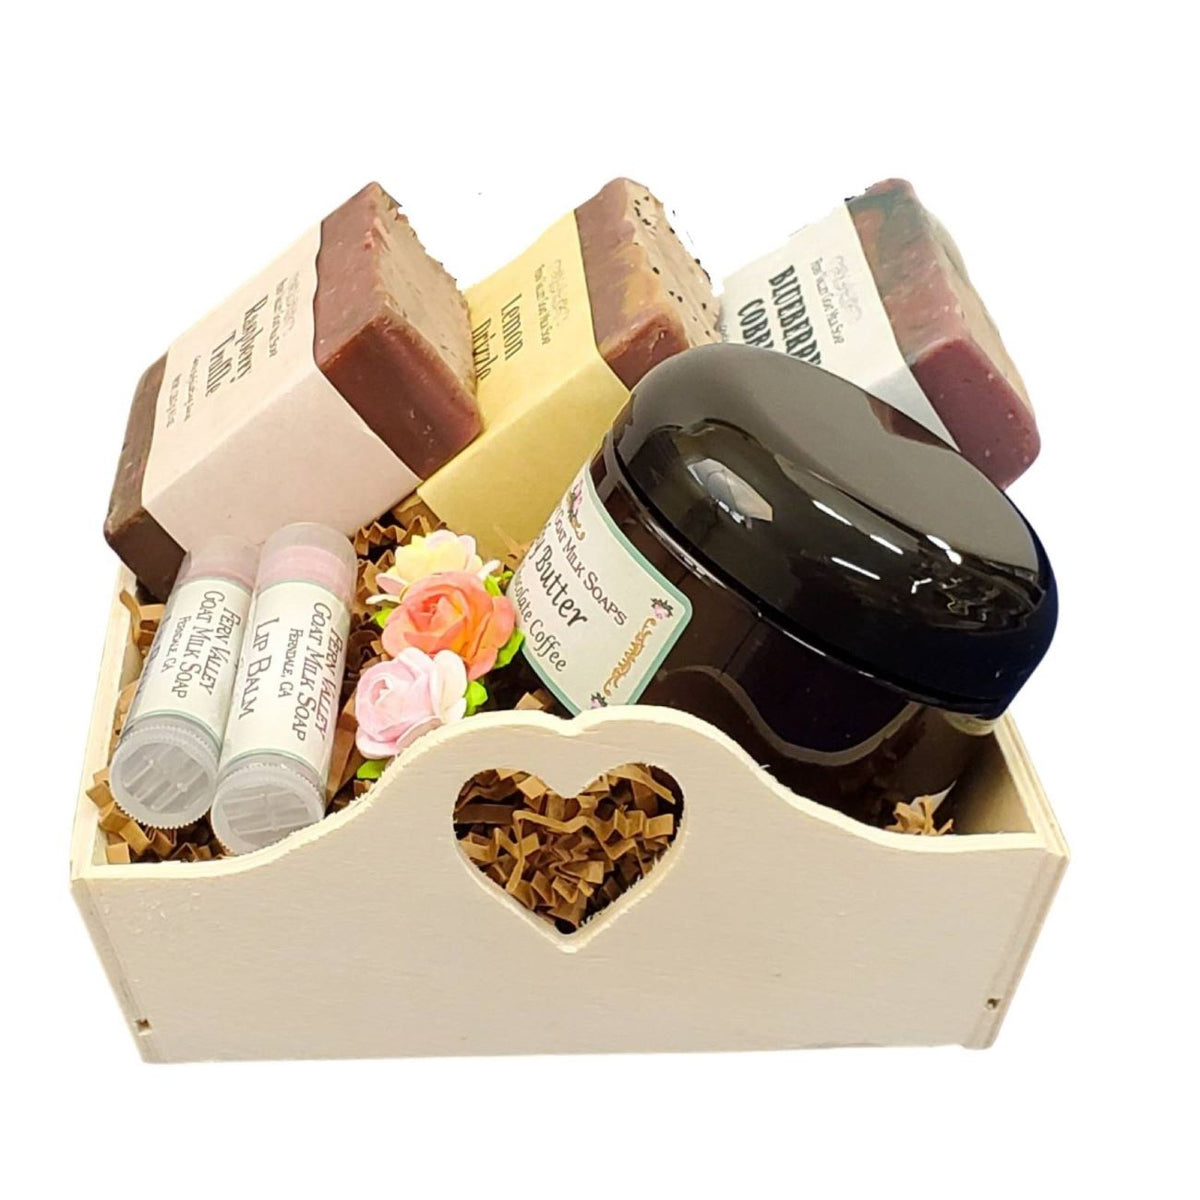 Dessert Lovers Gift Crate | Handmade Goat Milk Soaps | Decadent Chocolate Body Butter